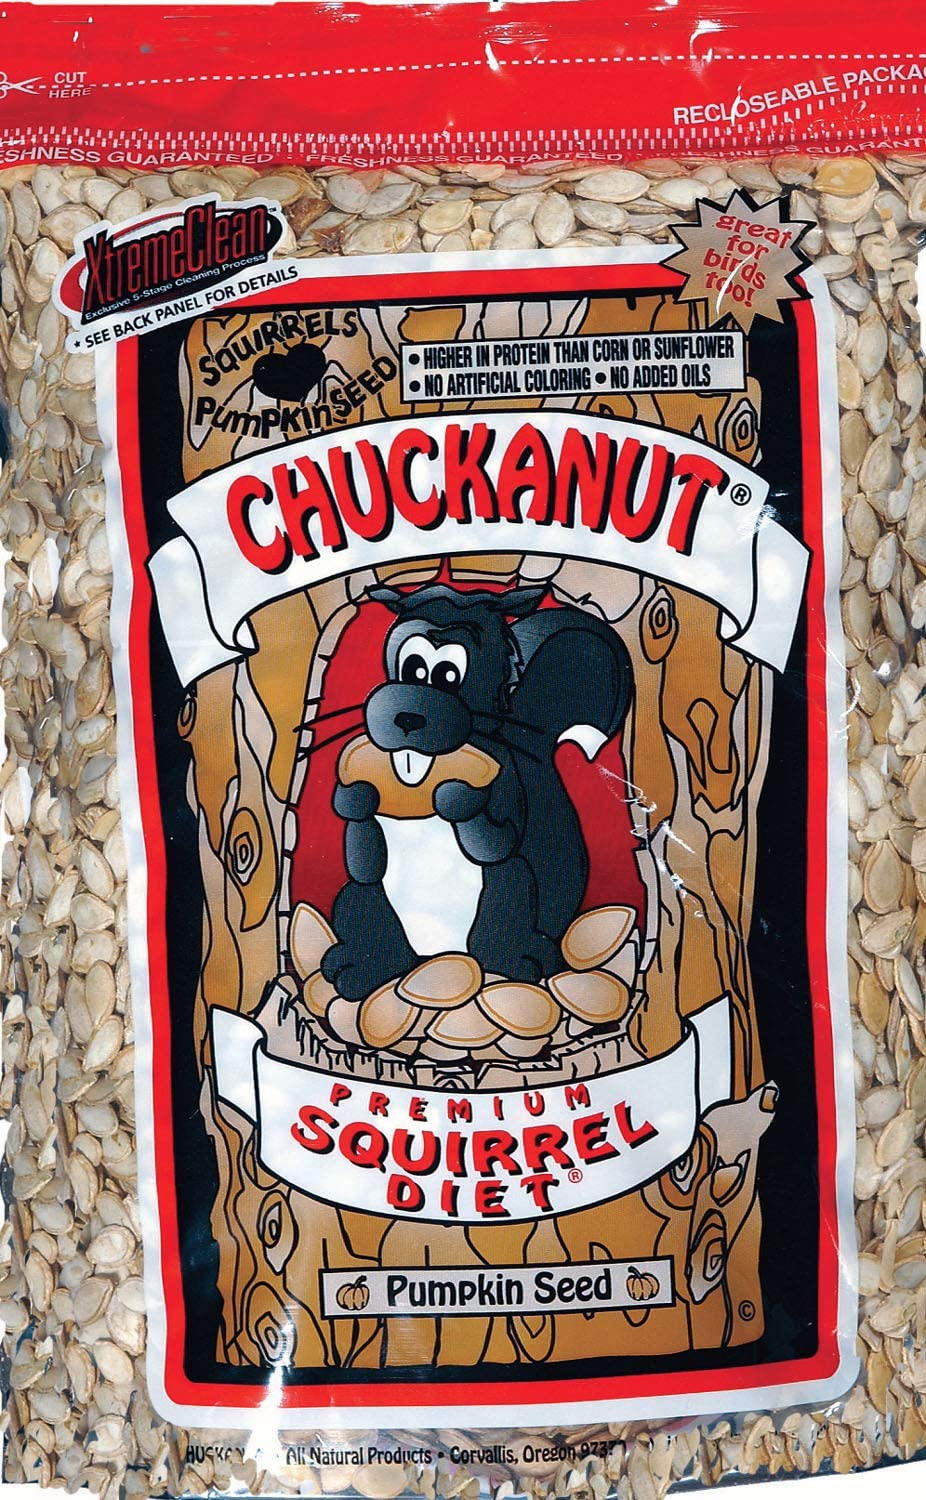 Buckeye Nutrition Carrot Crunchers Equine Treats, 4 lbs., Chuck-A-Nut - Food for Squirrels, 3 lbs